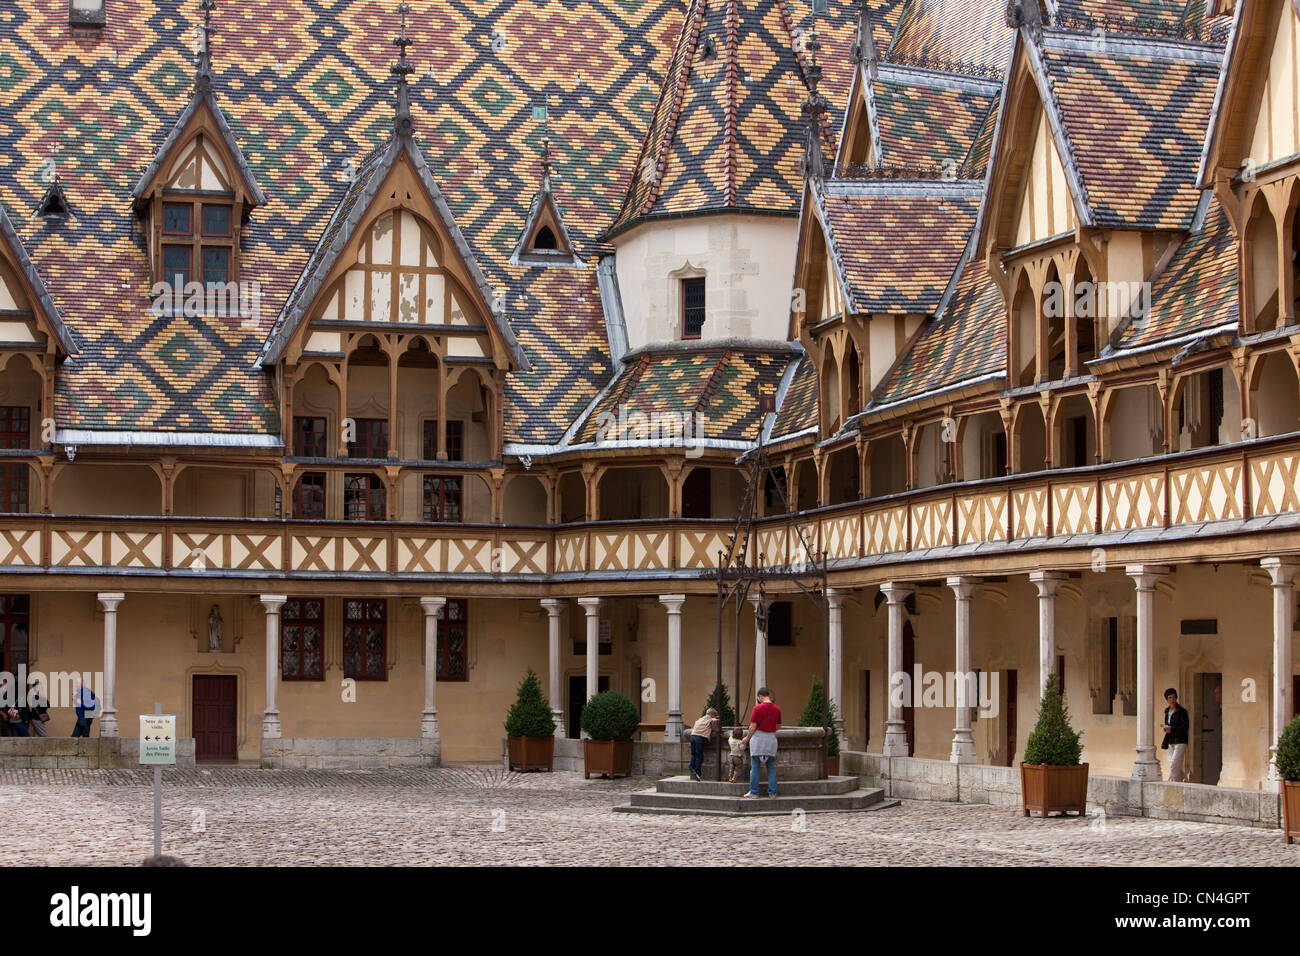 France, Cote d'Or, Beaune, the Hospices de Beaune, Hotel Dieu museum, colorful glazed tile roof - Stock Image